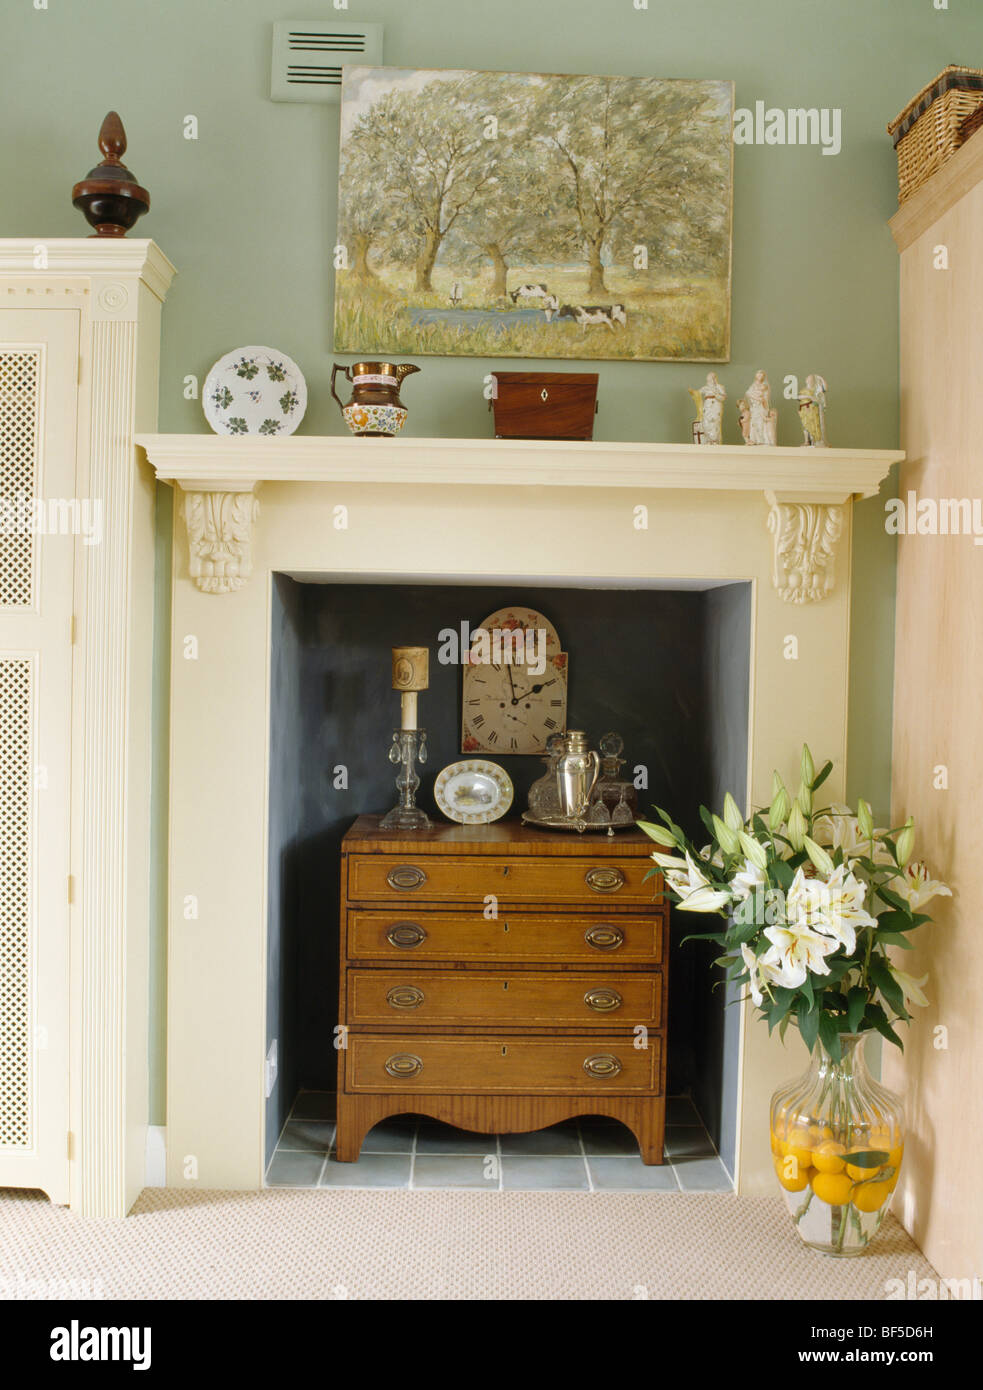 Close Up Of Small Chest Of Drawers In White Fireplace In Pale Green Cottage Dining  Room